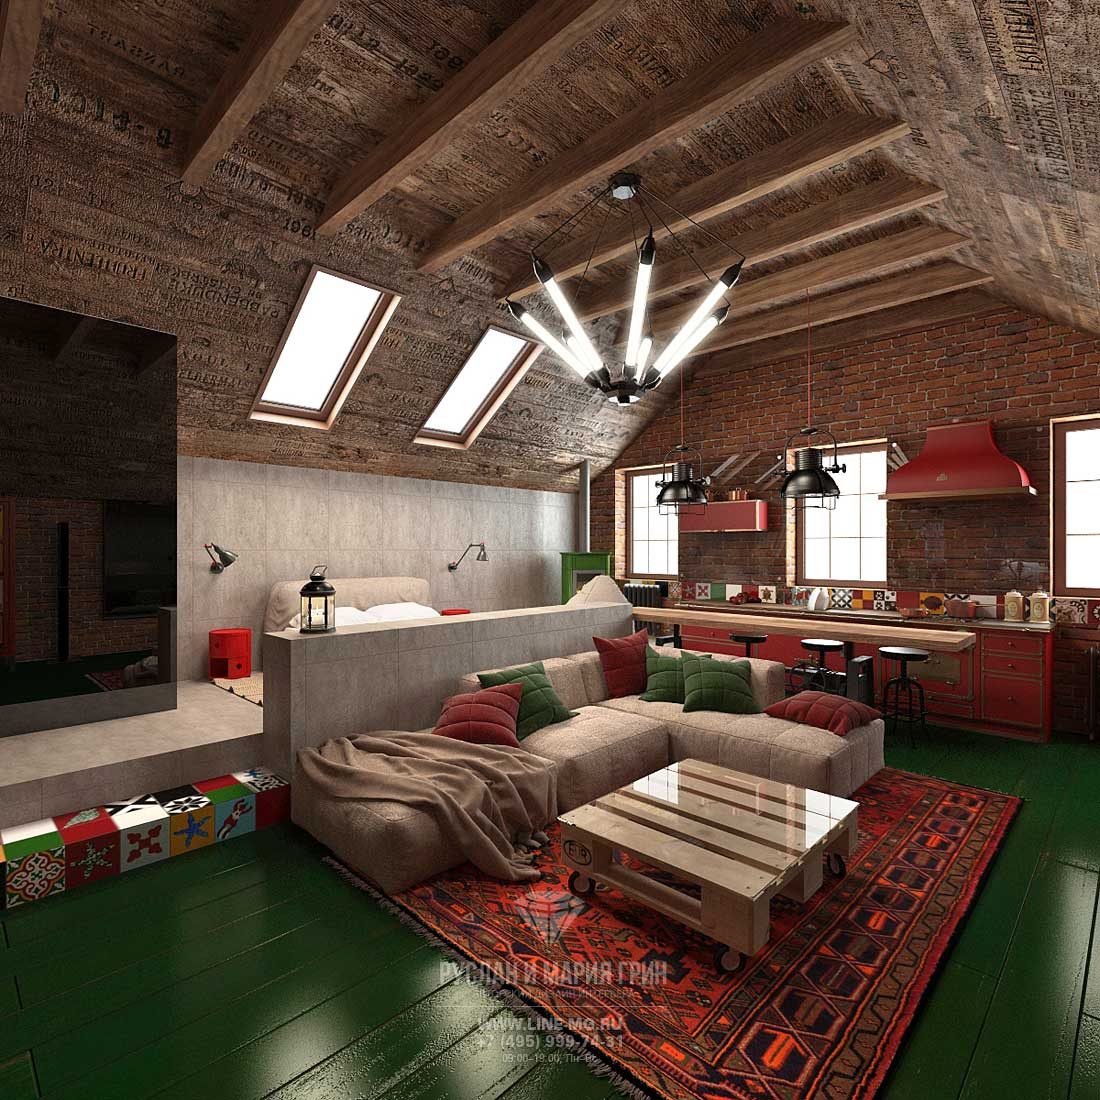 Novelty of 2015. Loft attic design under gable roof